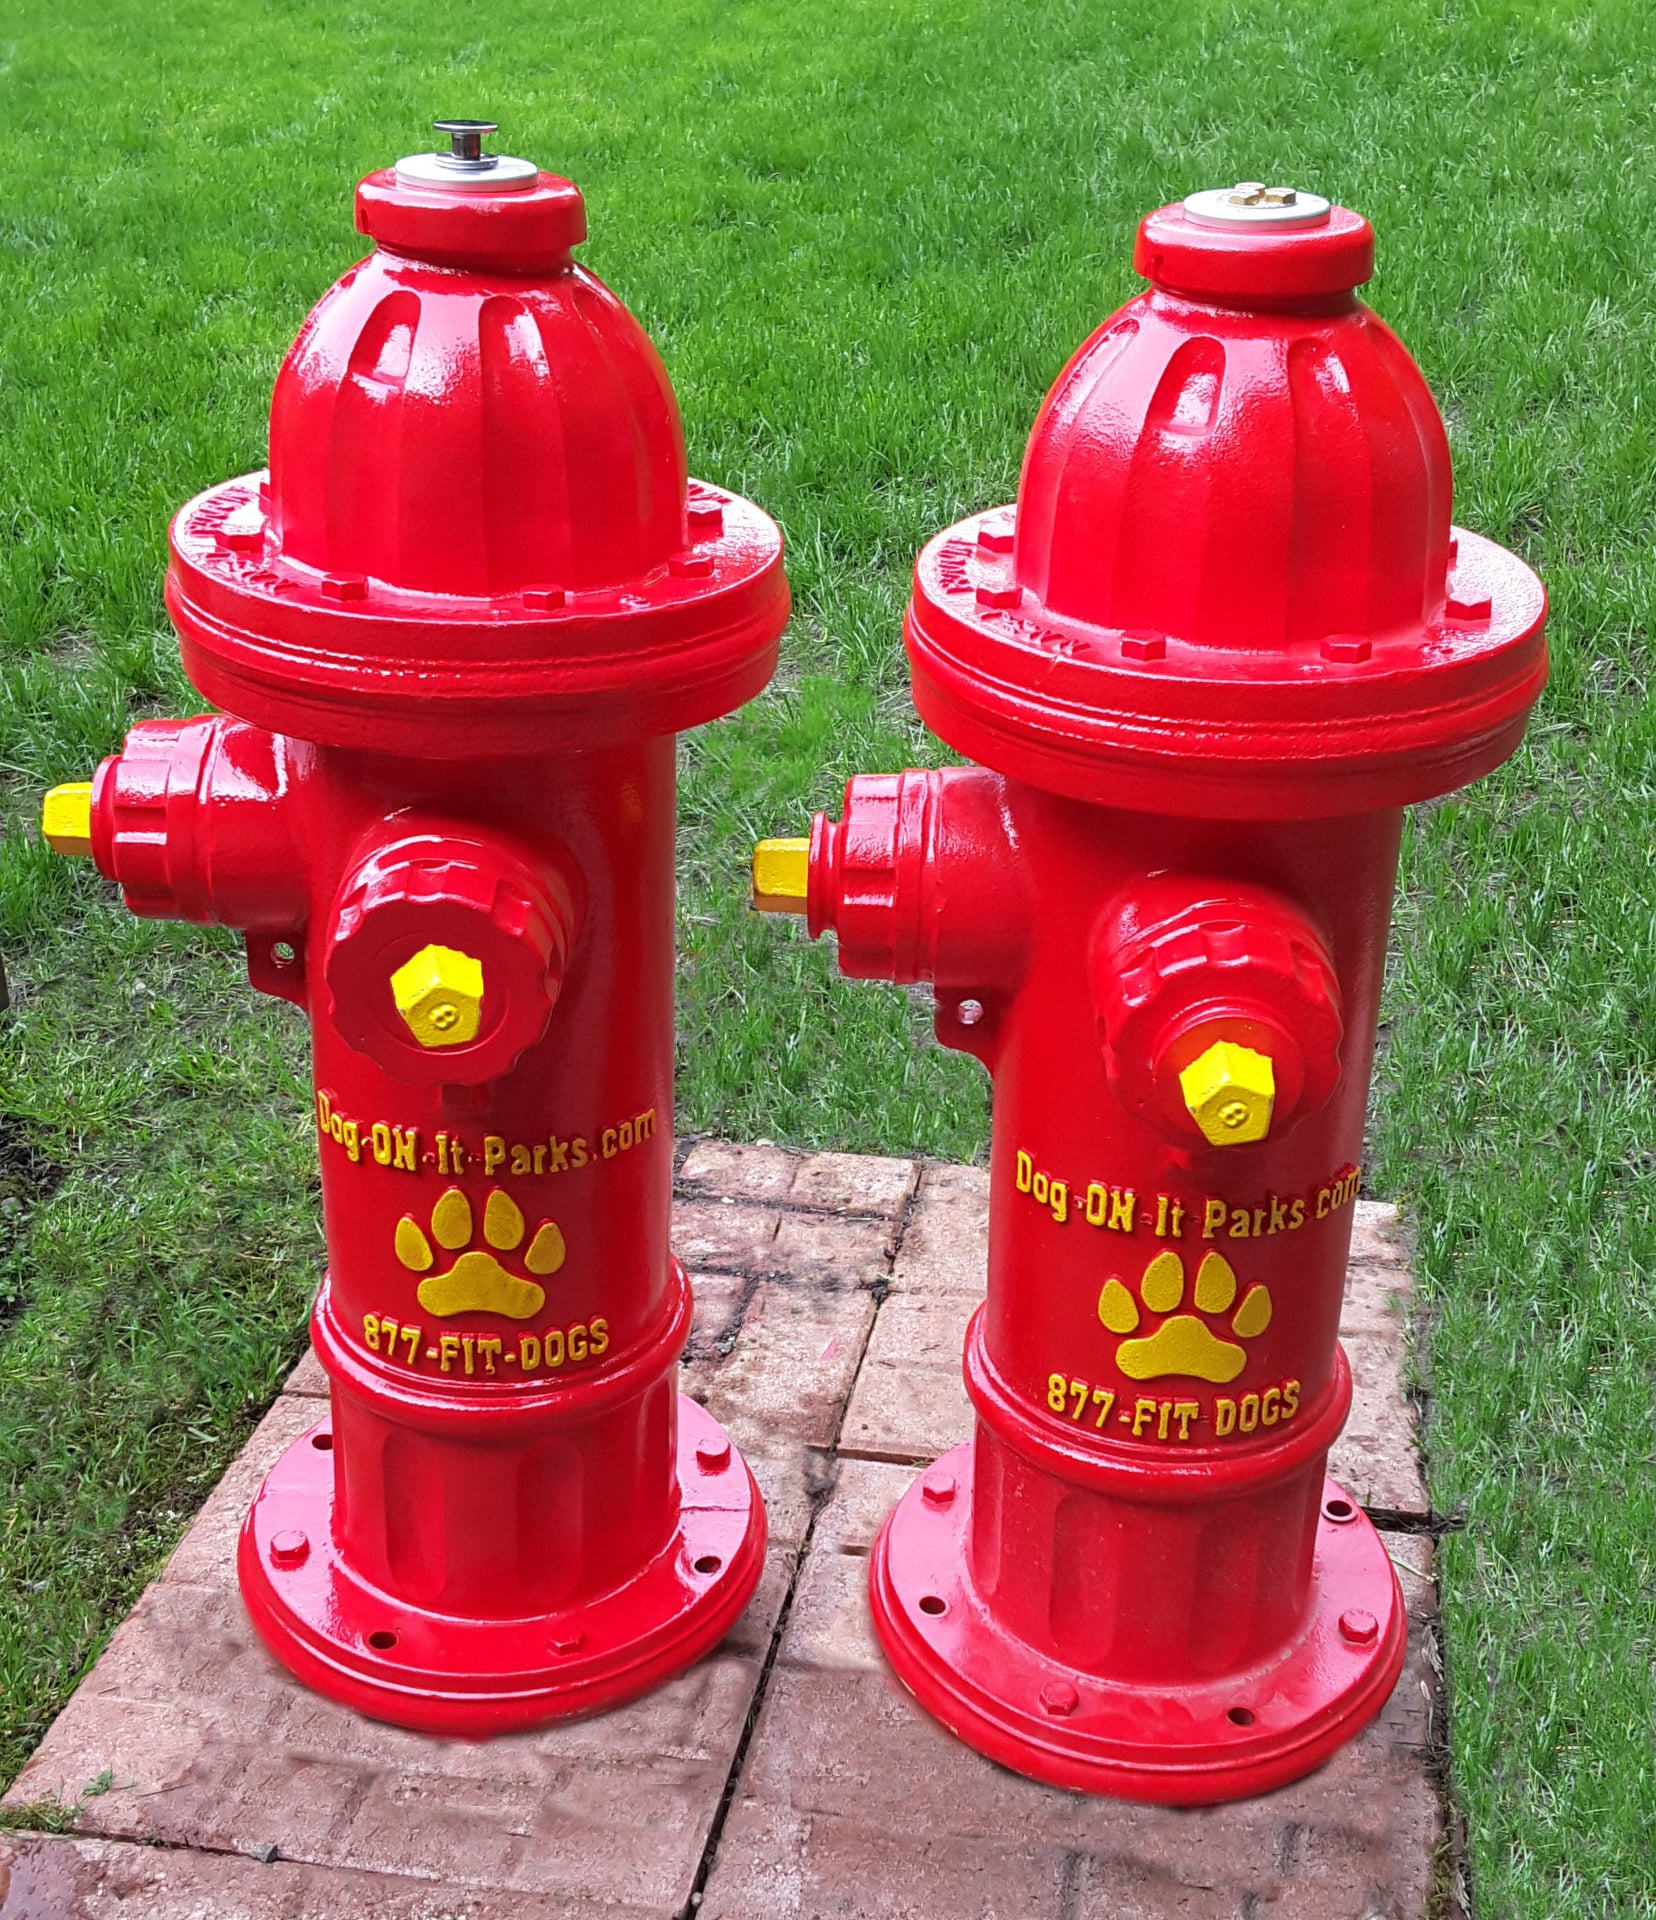 fixfire co moreover American Gas Meter Ac 630 moreover Chapter 14 Fire Fighter Academy together with Top Spray Fire Hydrant together with Storz Coupling. on fire hydrant systems